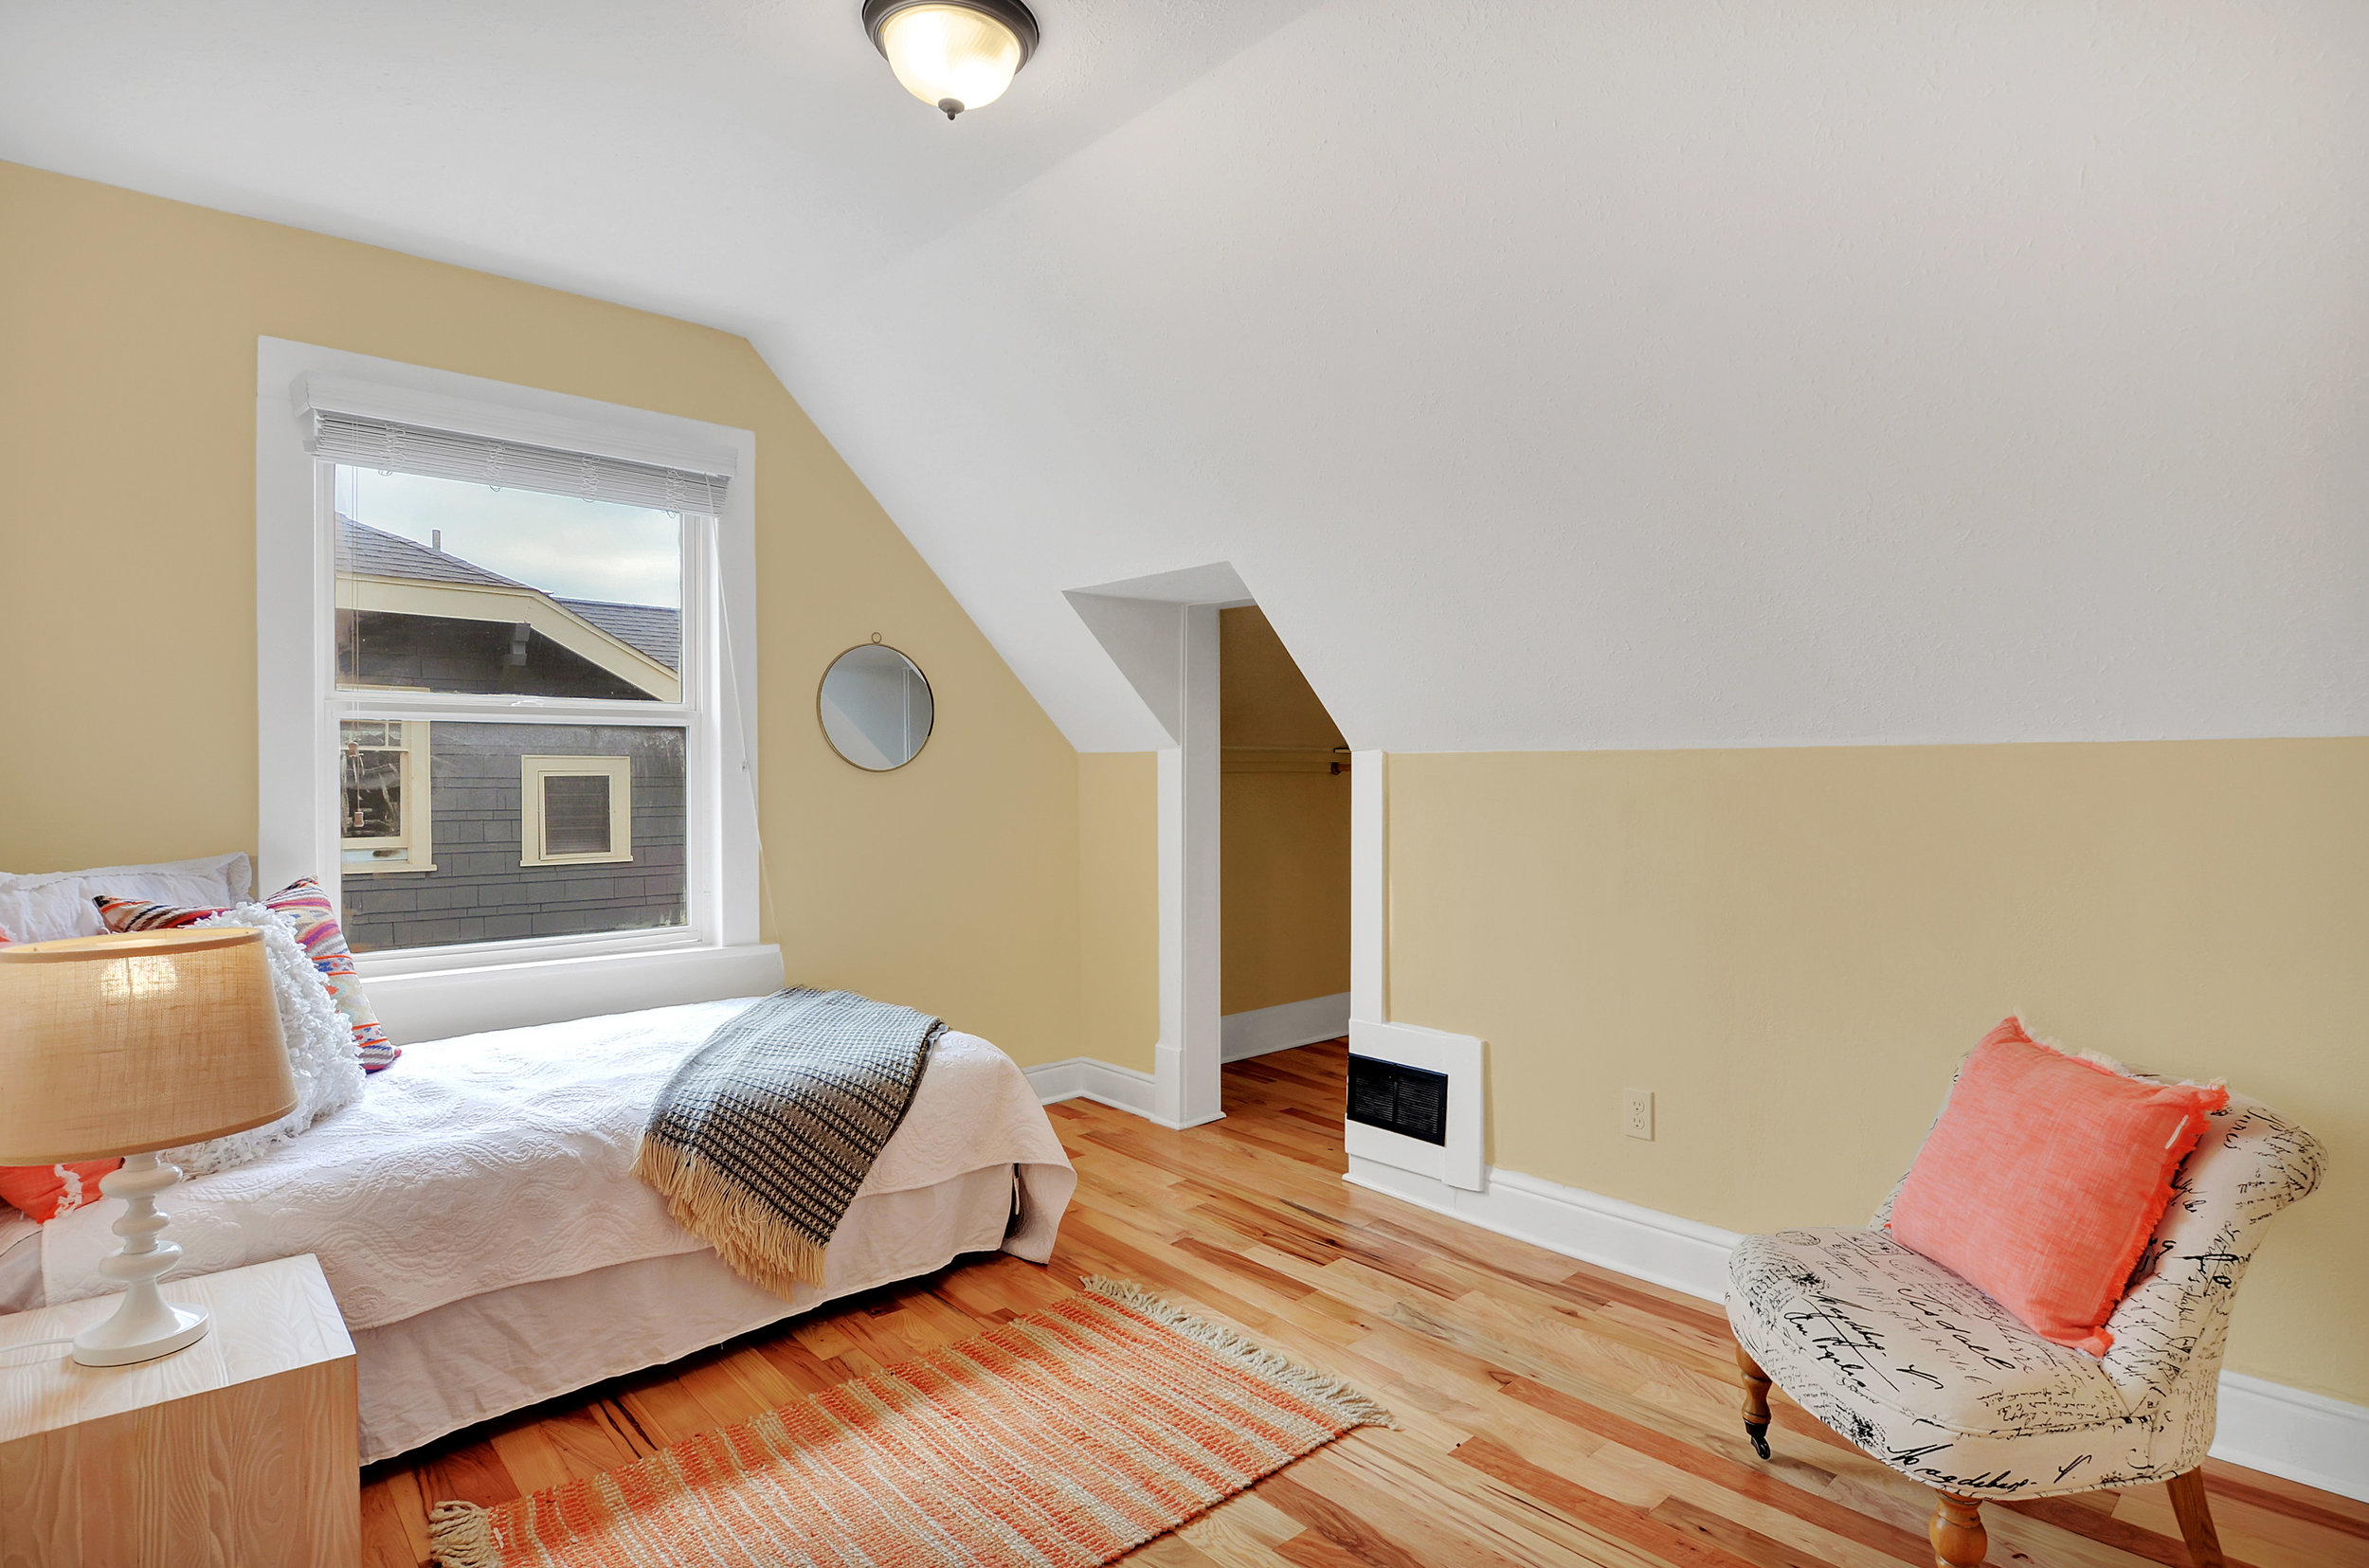 The 2nd of 3 bedrooms, perfect for kids, teens, or guests with a cozy curved ceiling and hardwood floors.